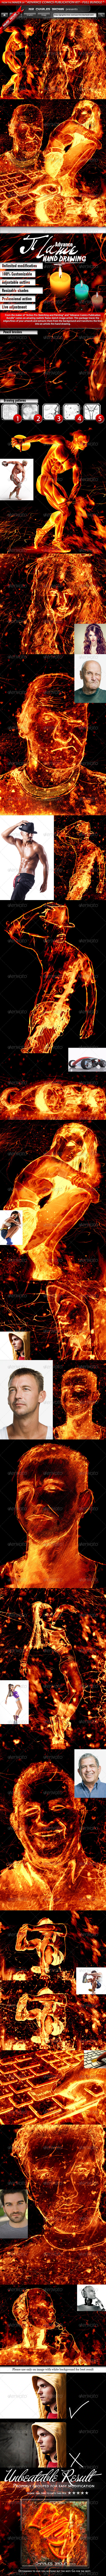 GraphicRiver Advance Flame Hand Drawing 5193709